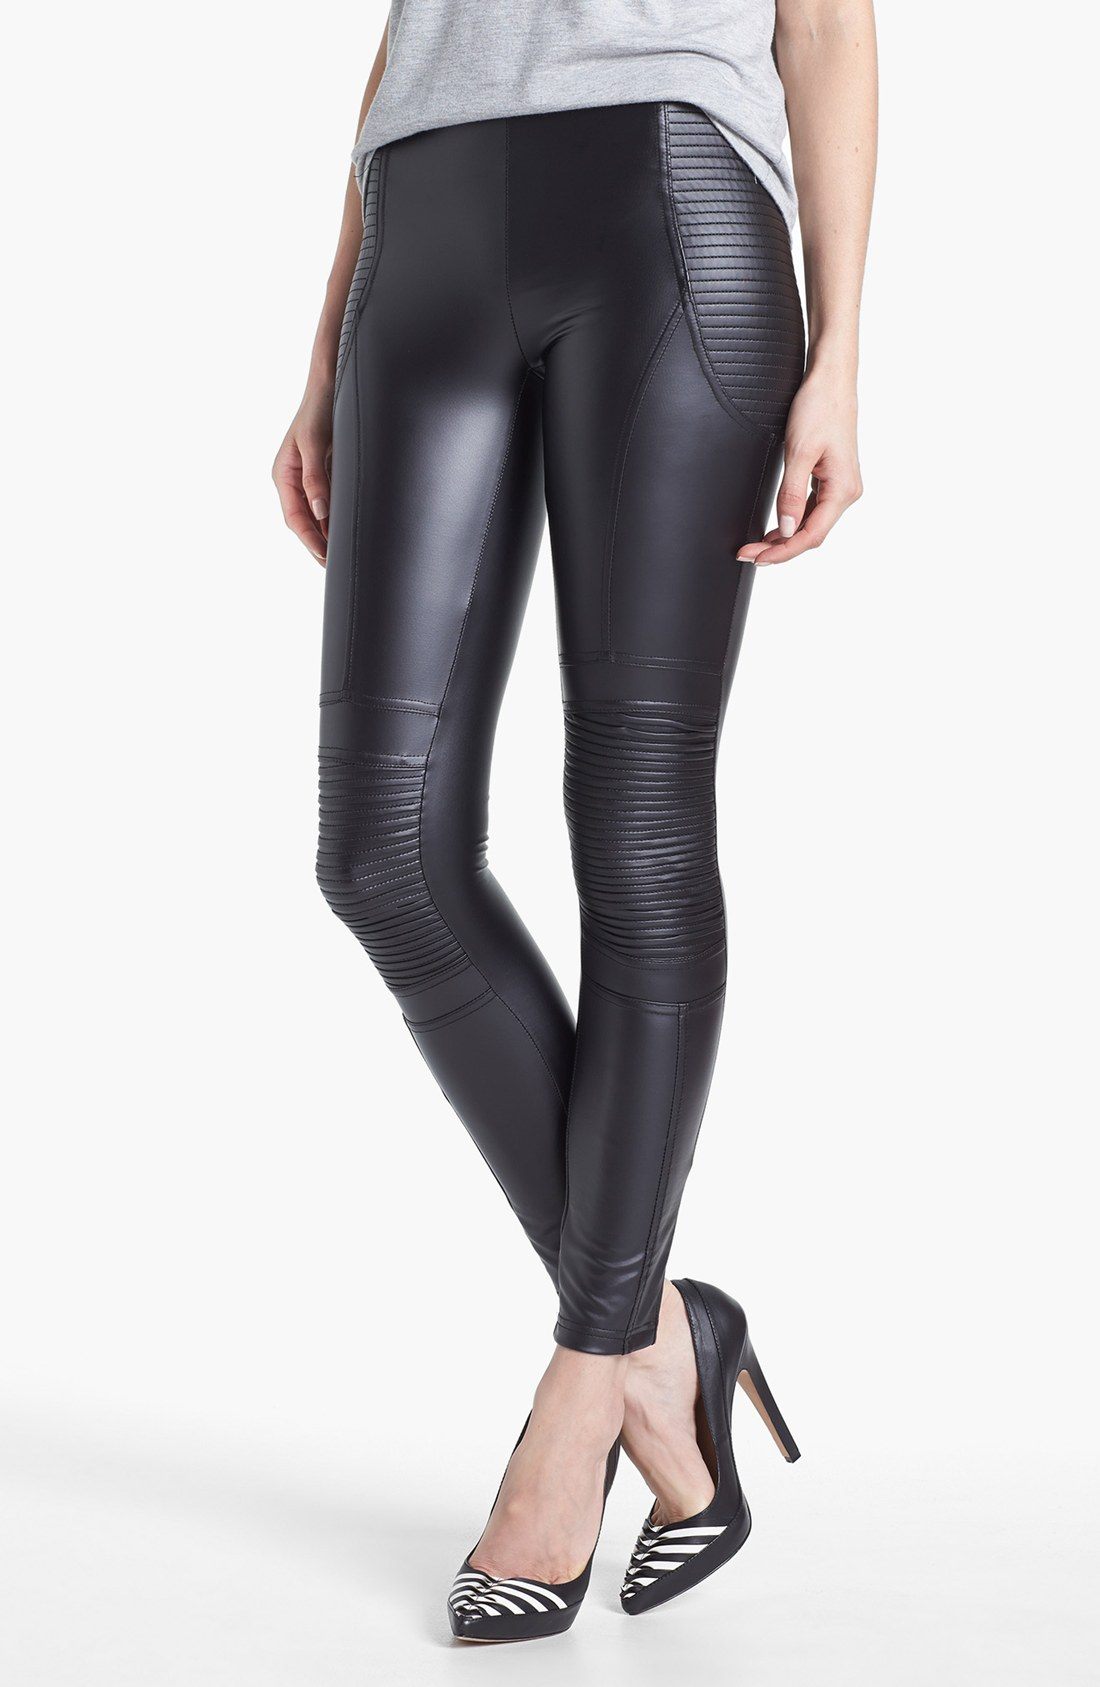 Shop eBay for great deals on Black Leather Leggings for Women. You'll find new or used products in Black Leather Leggings for Women on eBay. Free shipping on selected items.